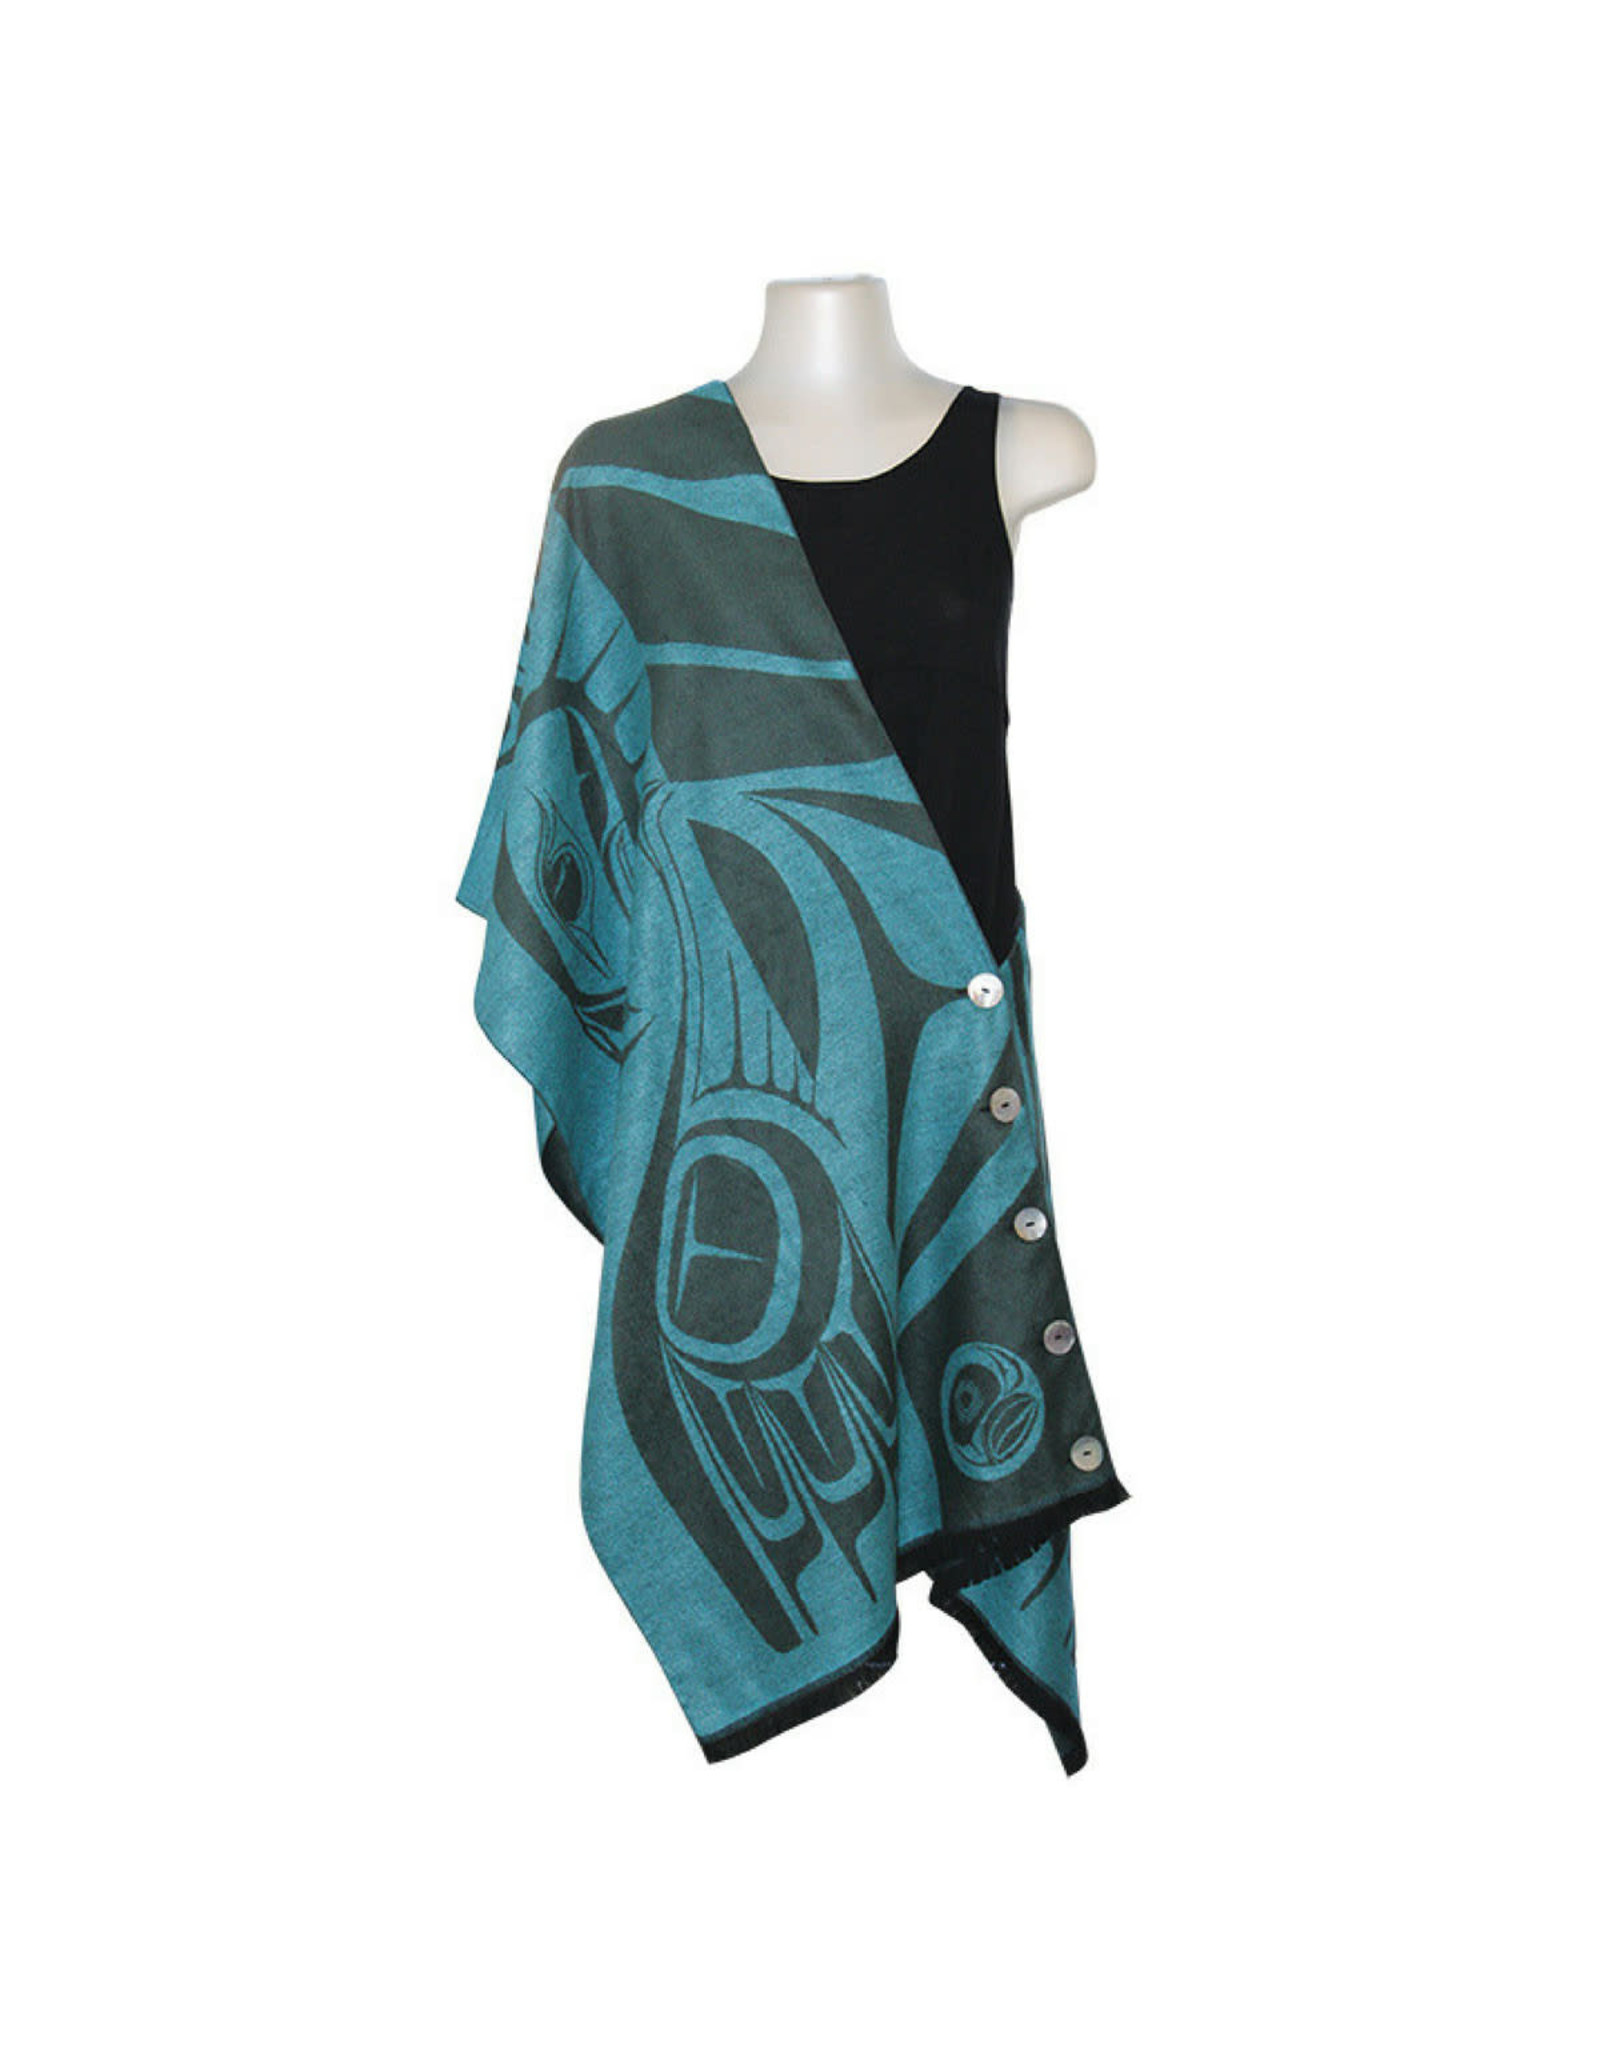 Button Shawl - Eagle by Paul Windsor (BS14)